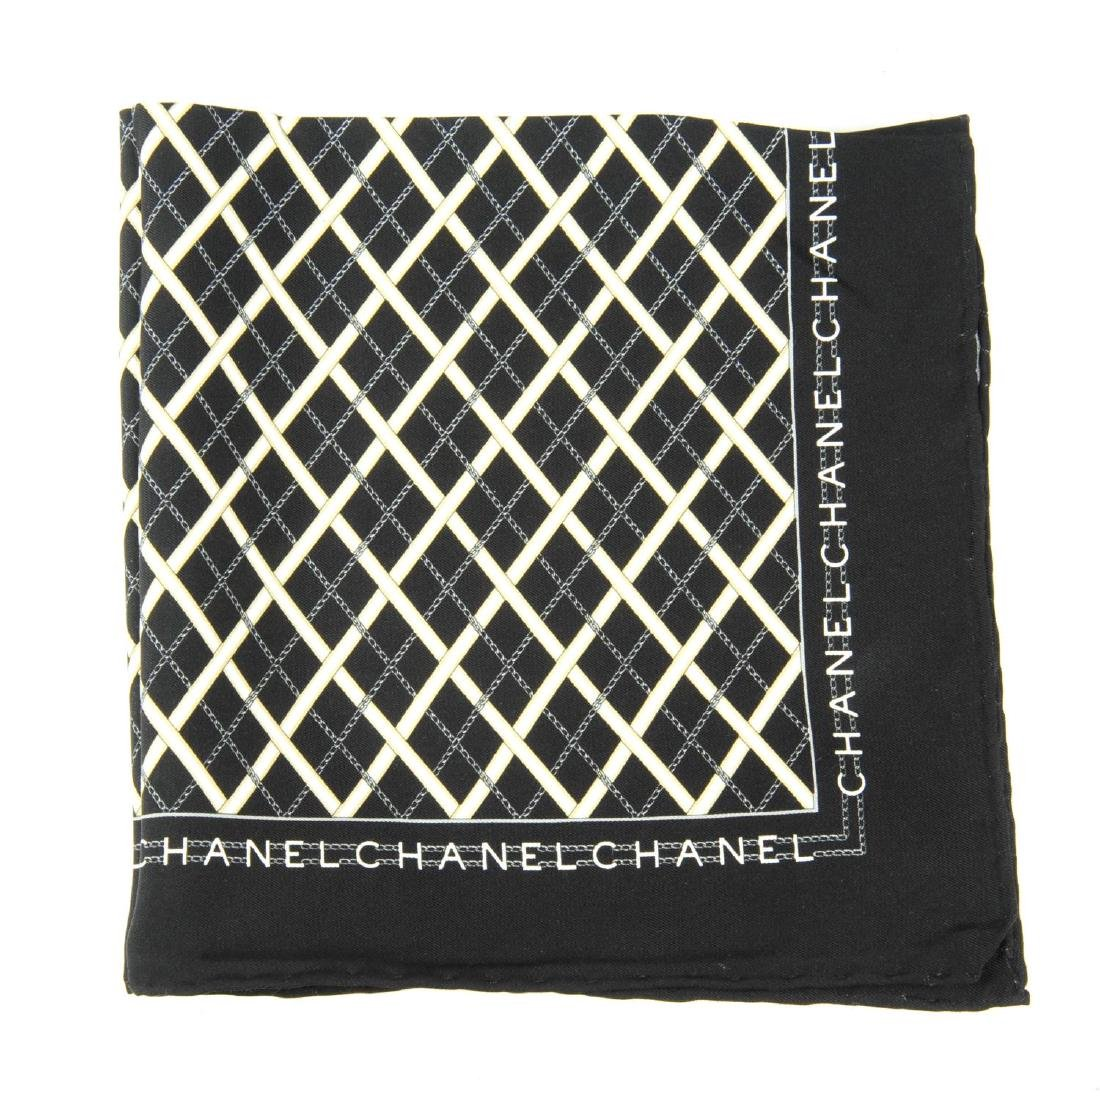 CHANEL - a small silk scarf. A black scarf with a white